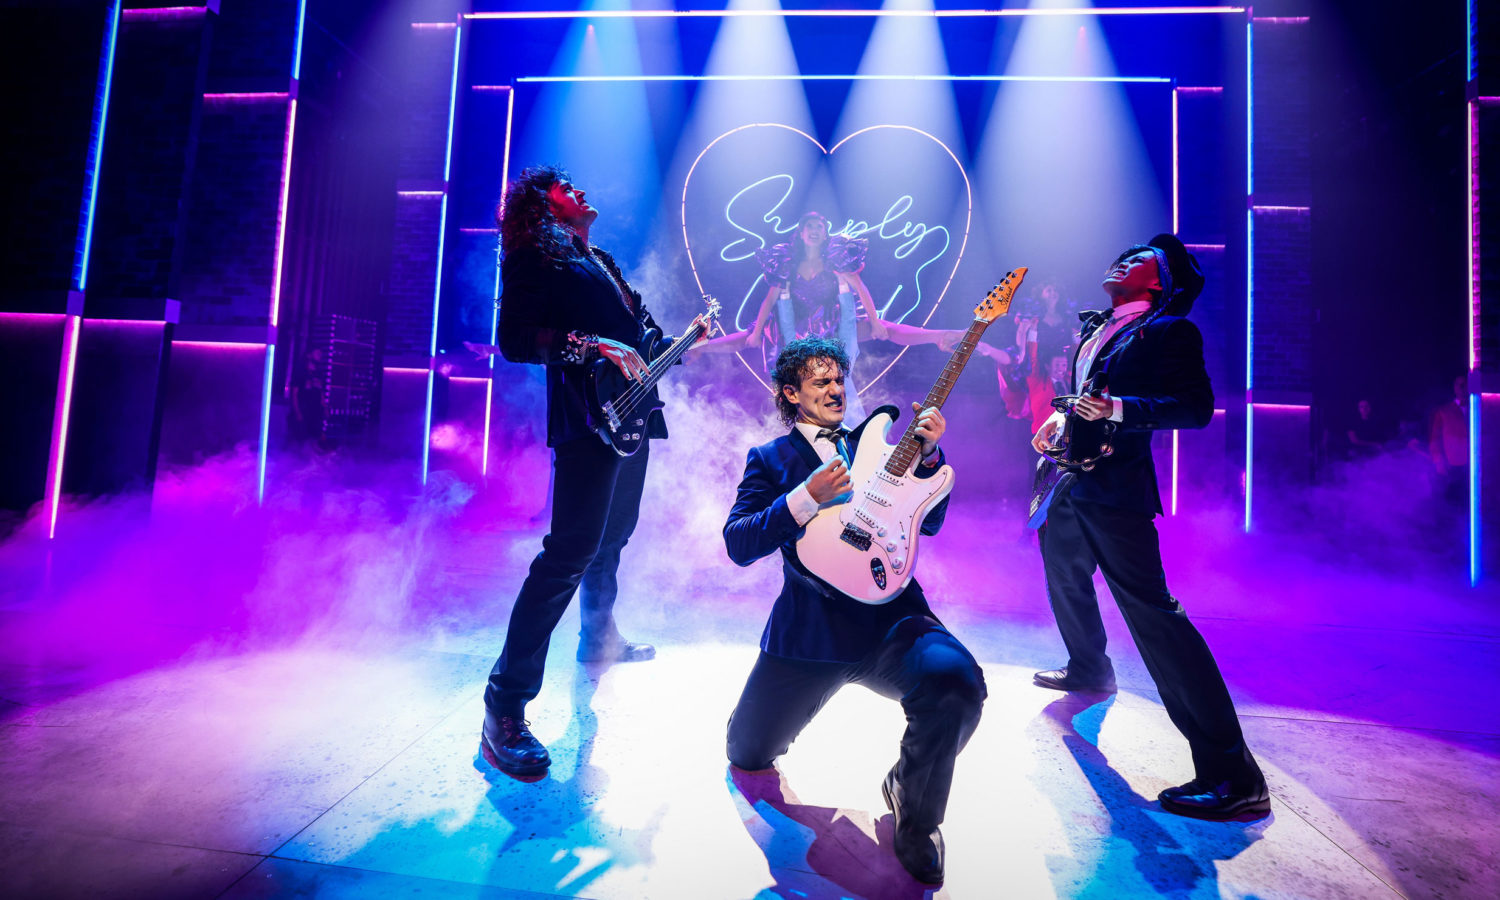 Christian Charisiou stars in national tour of 'The Wedding Singer'